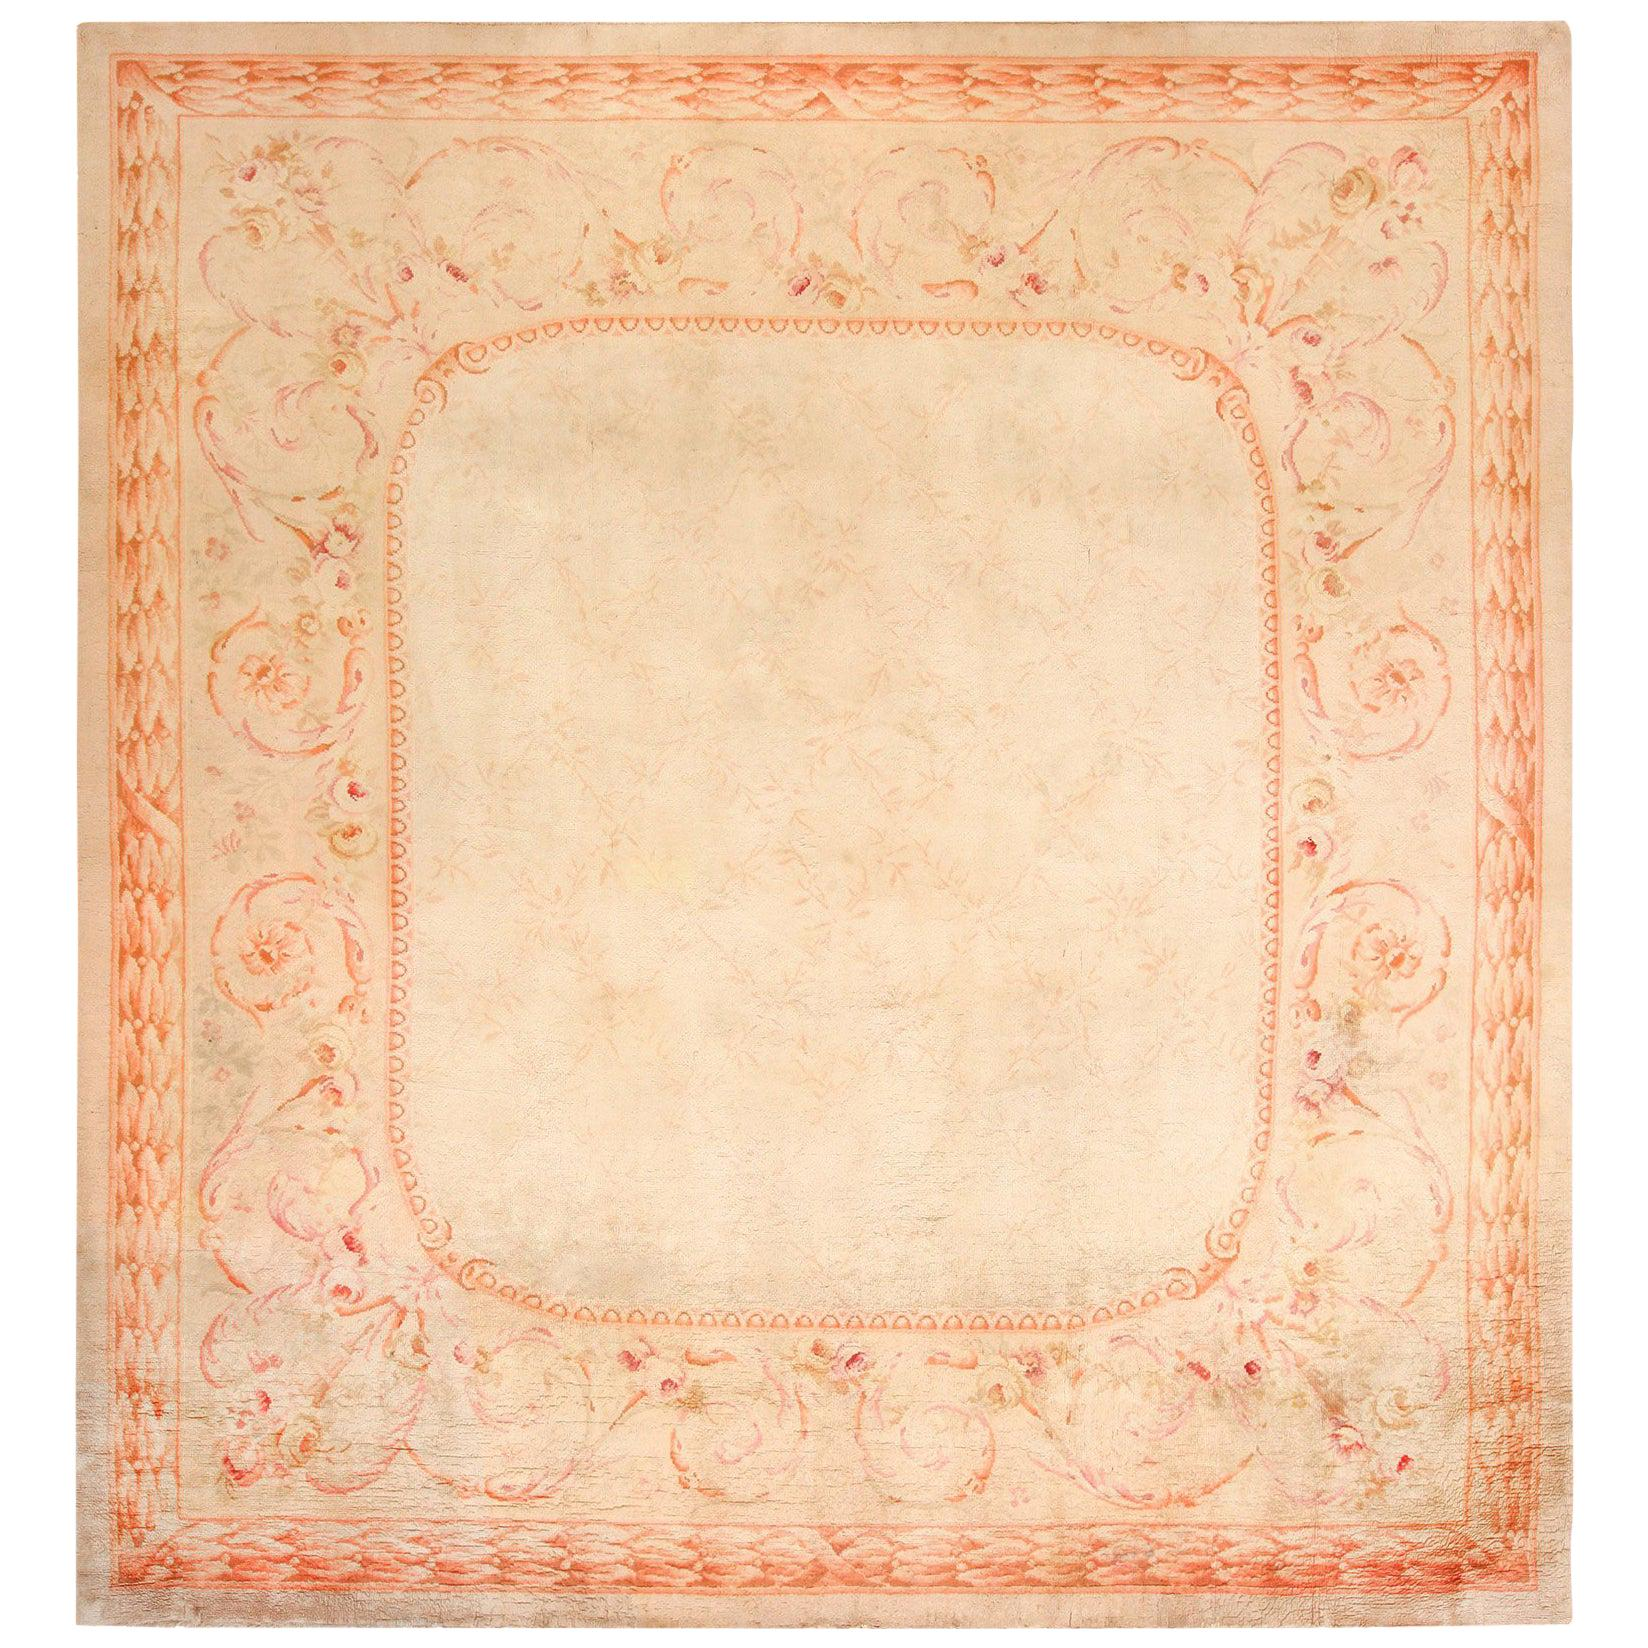 Square Antique French Savonnerie Rug. Size: 11 ft 10 in x 12 ft 8 in